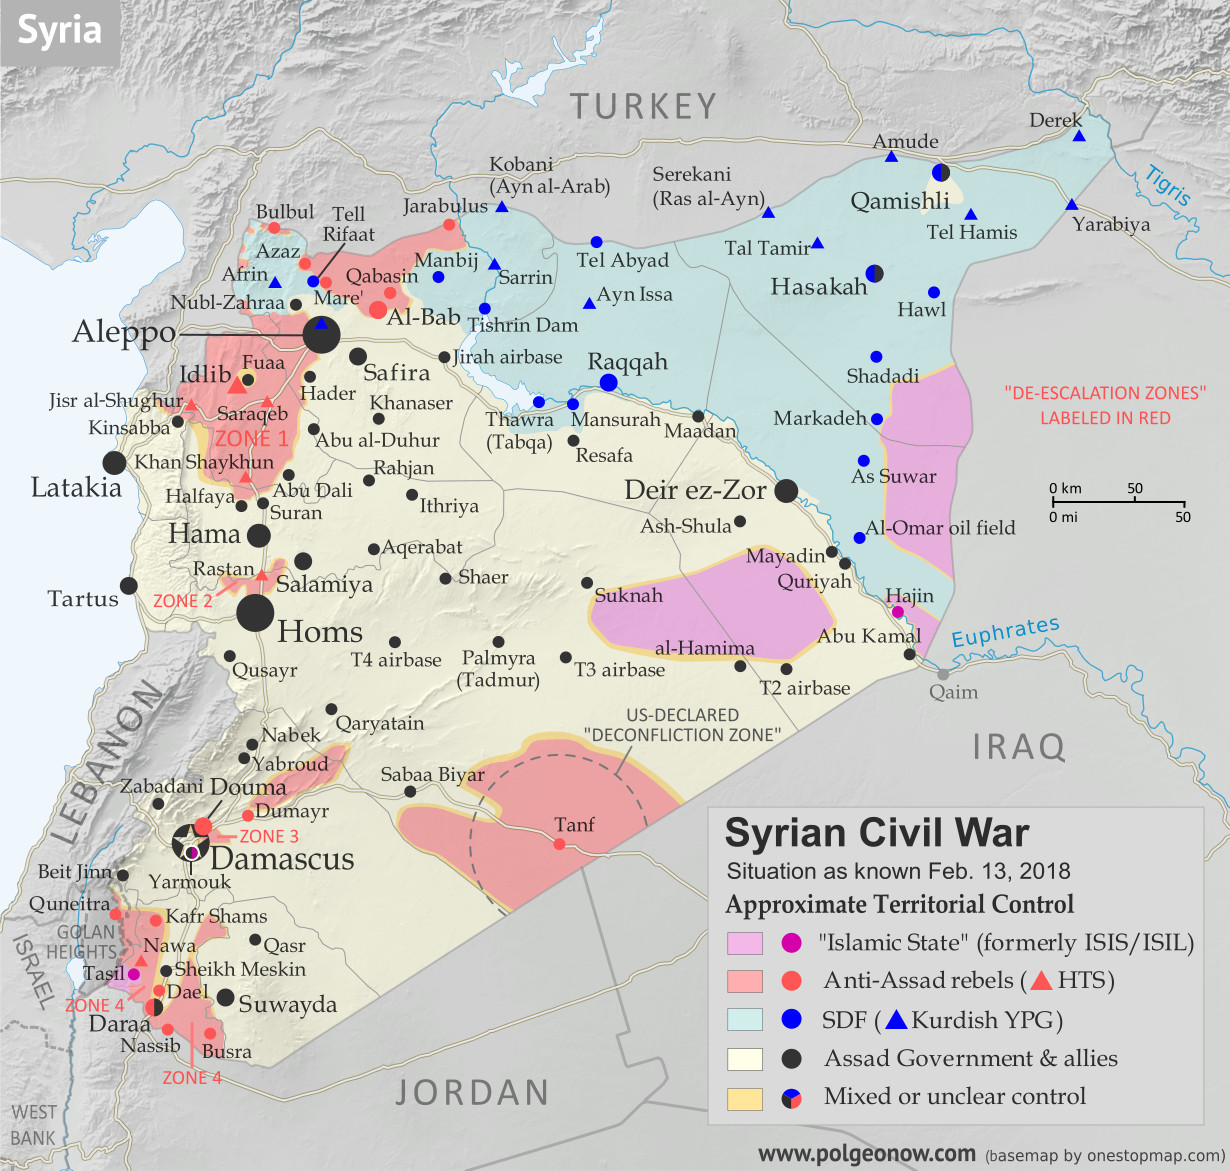 Who controls what in Syria? Rebel and ISIS control map of the Syrian Civil War. Shows territorial control as of February 2018 (Free Syrian Army rebels, Kurdish YPG, Syrian Democratic Forces (SDF), Jabhat Fateh al-Sham / Hayat Tahrir al-Sham (Al-Nusra Front), Islamic State (ISIS/ISIL), and others). Includes Russia-Turkey-Iran agreed de-escalation zones and US deconfliction zone, plus recent locations of conflict and territorial control changes, such as Abu al-Duhur, Bulbul, Saraqeb, and more. Colorblind accessible.